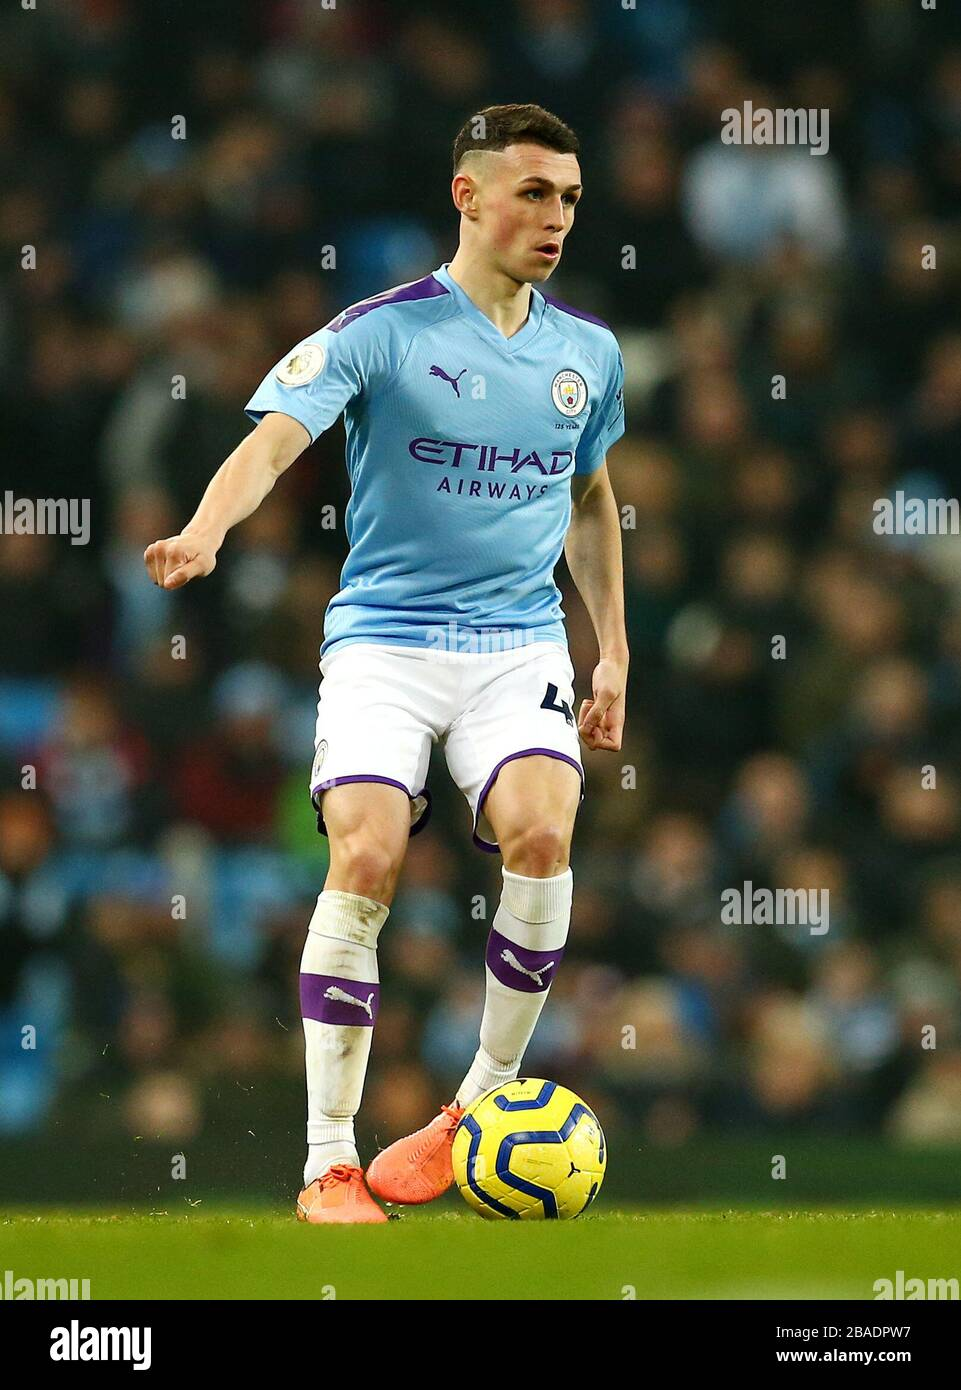 Manchester City's Phil Foden Stock Photo